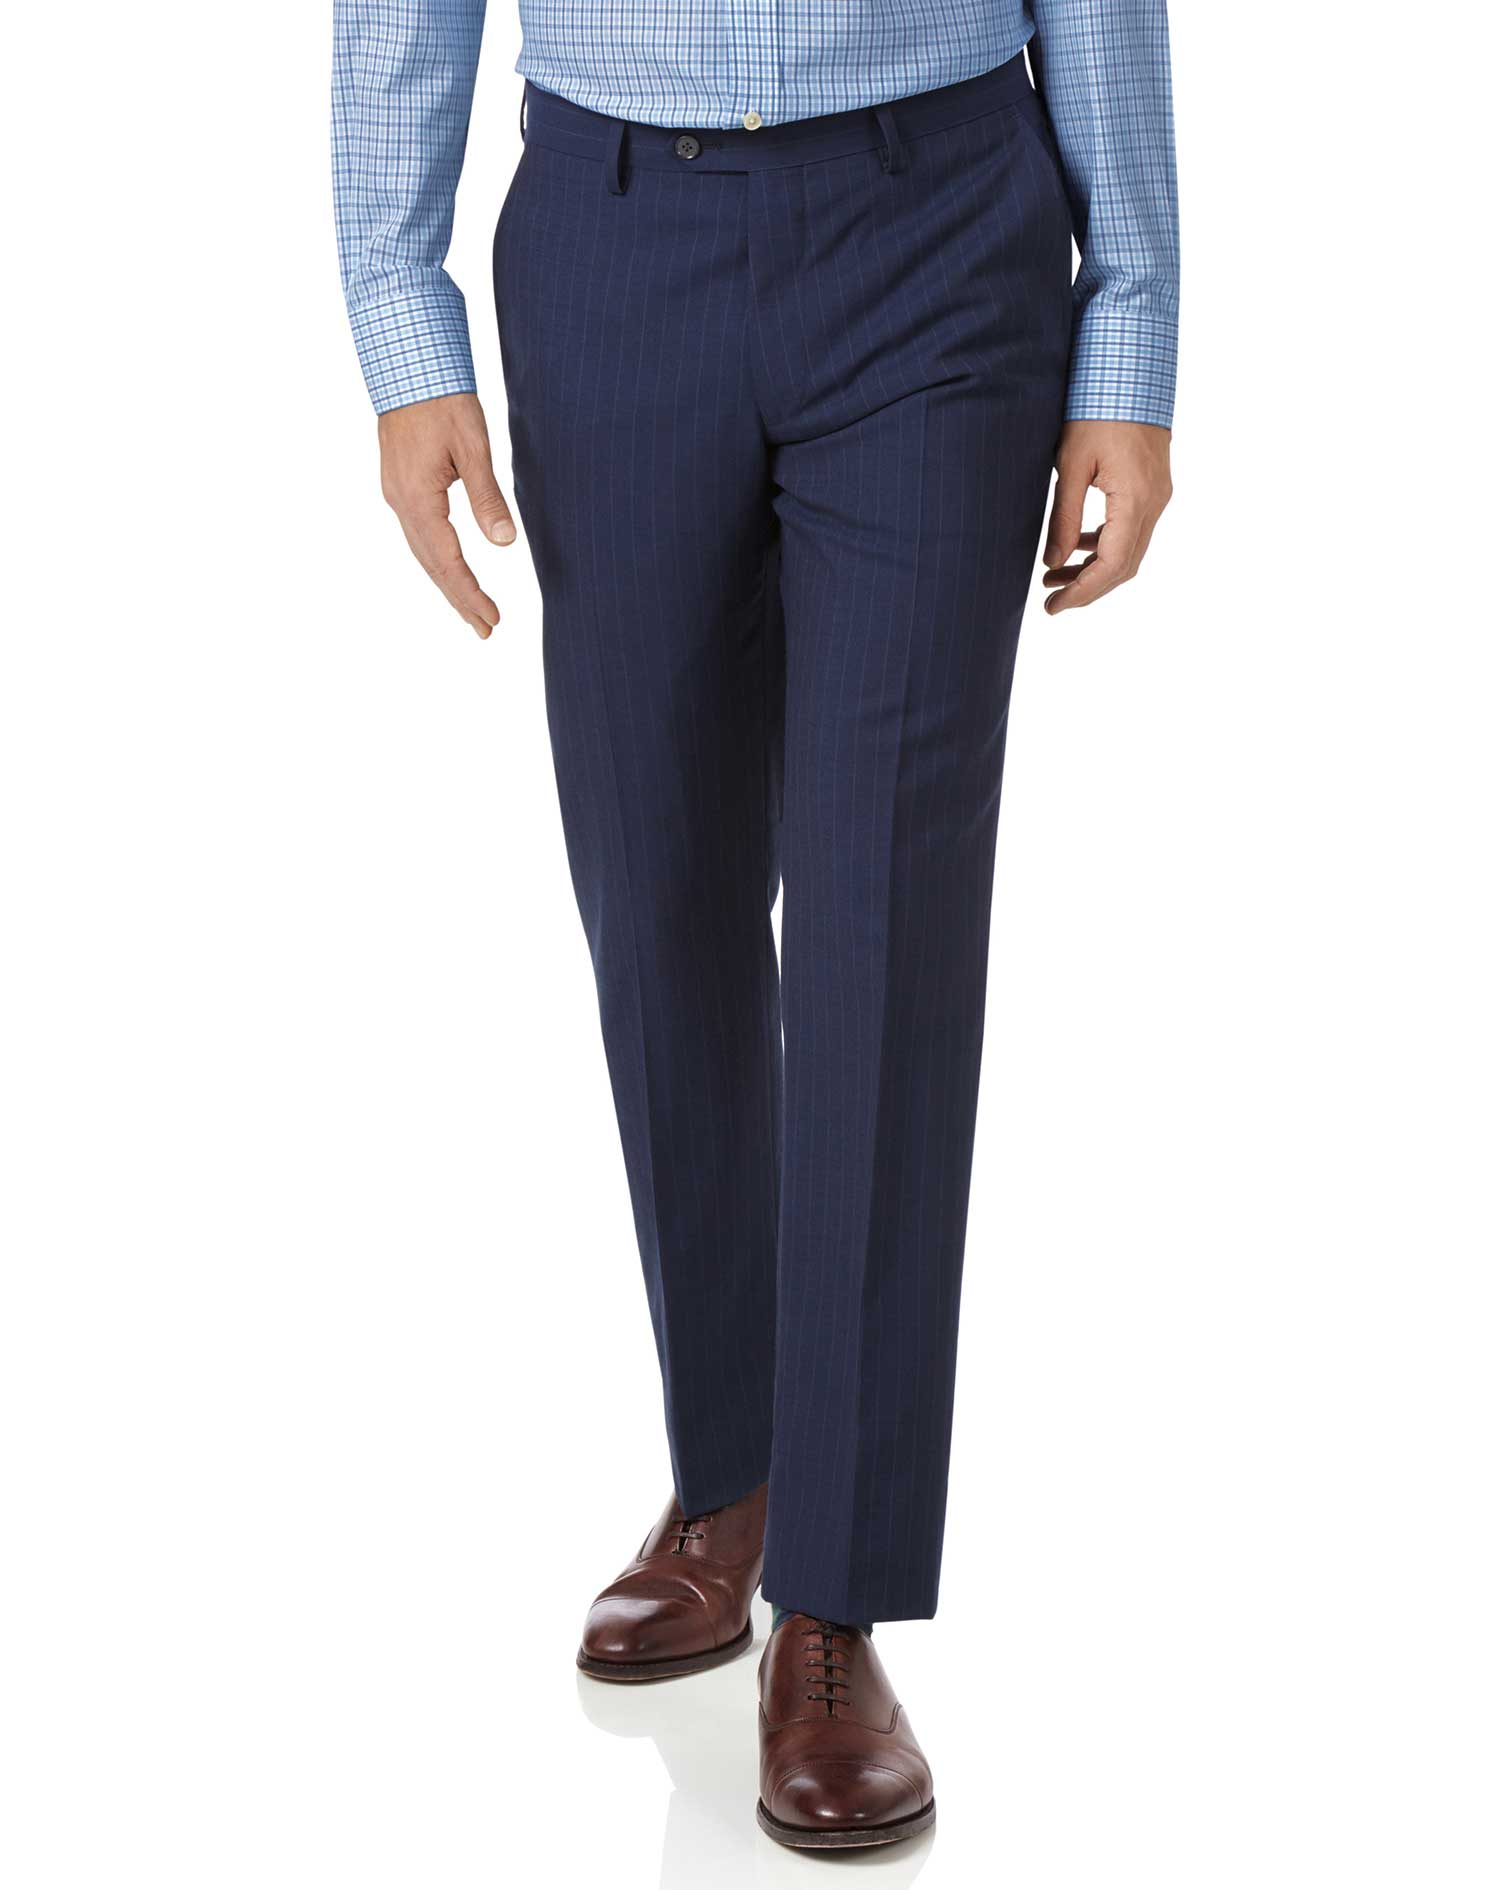 Pantalon de costume business bleu marine en Panama slim fit à rayures